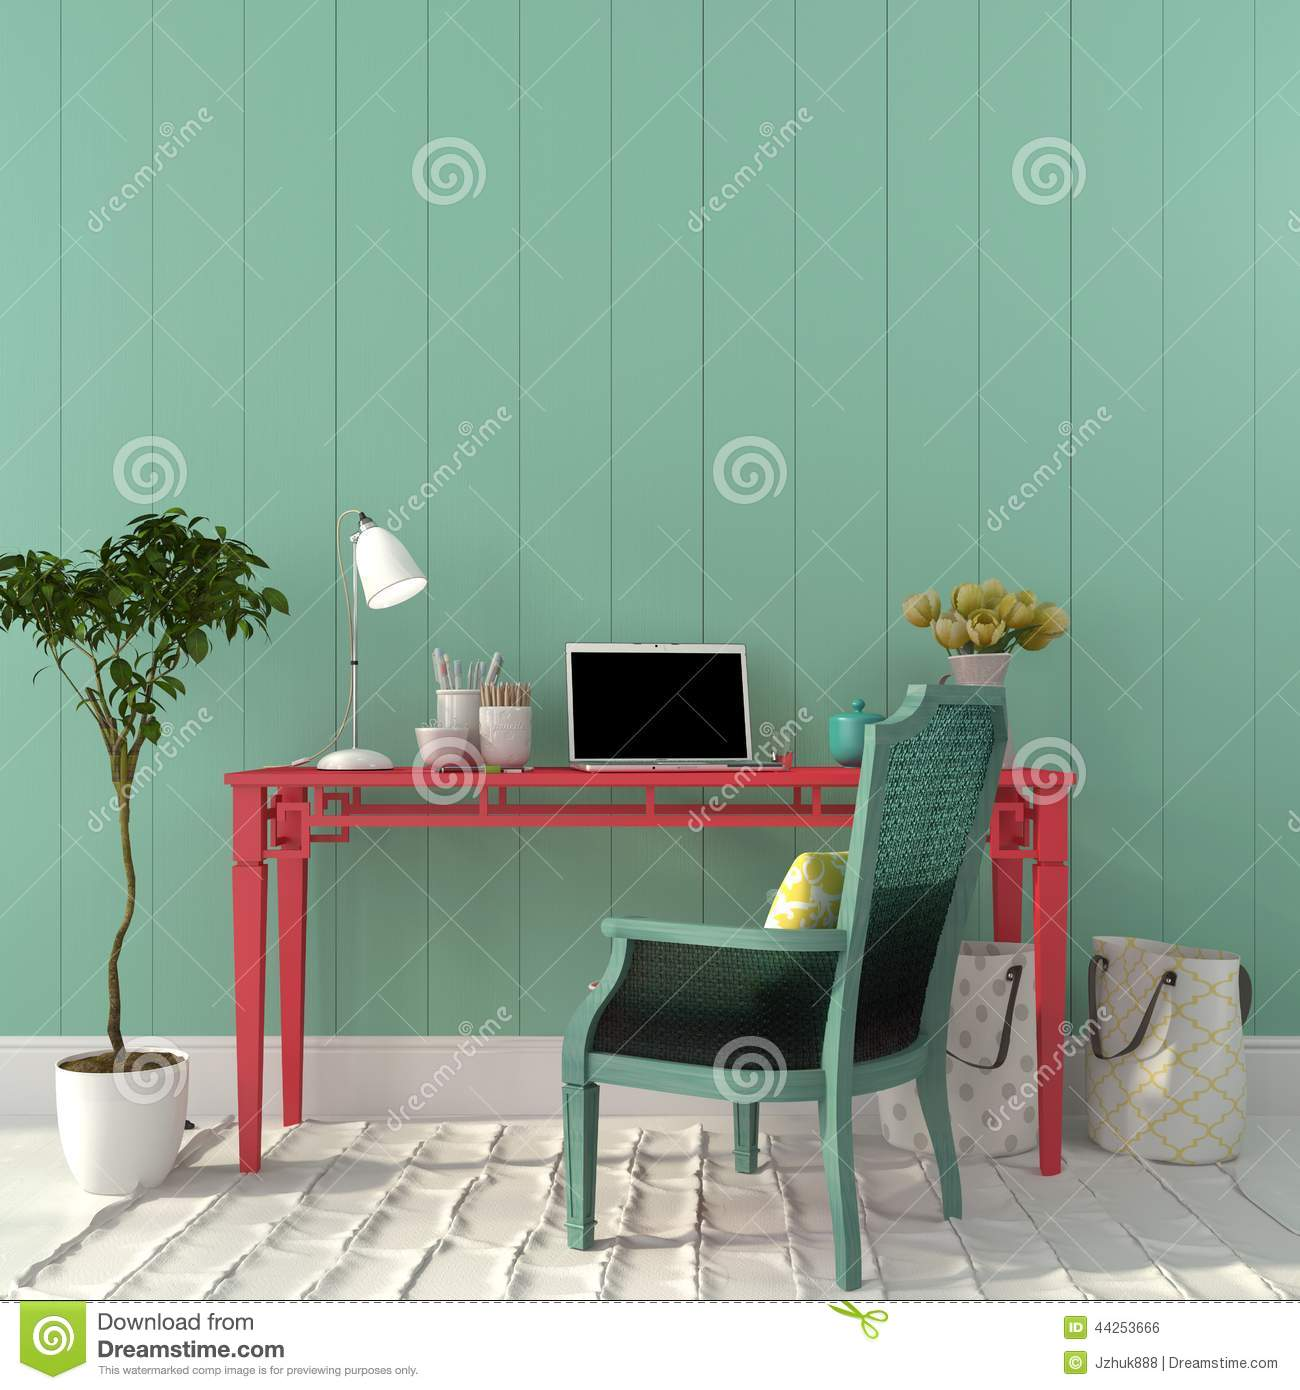 Colorful Home Office colorful interior of home office stock photo - image: 44253666